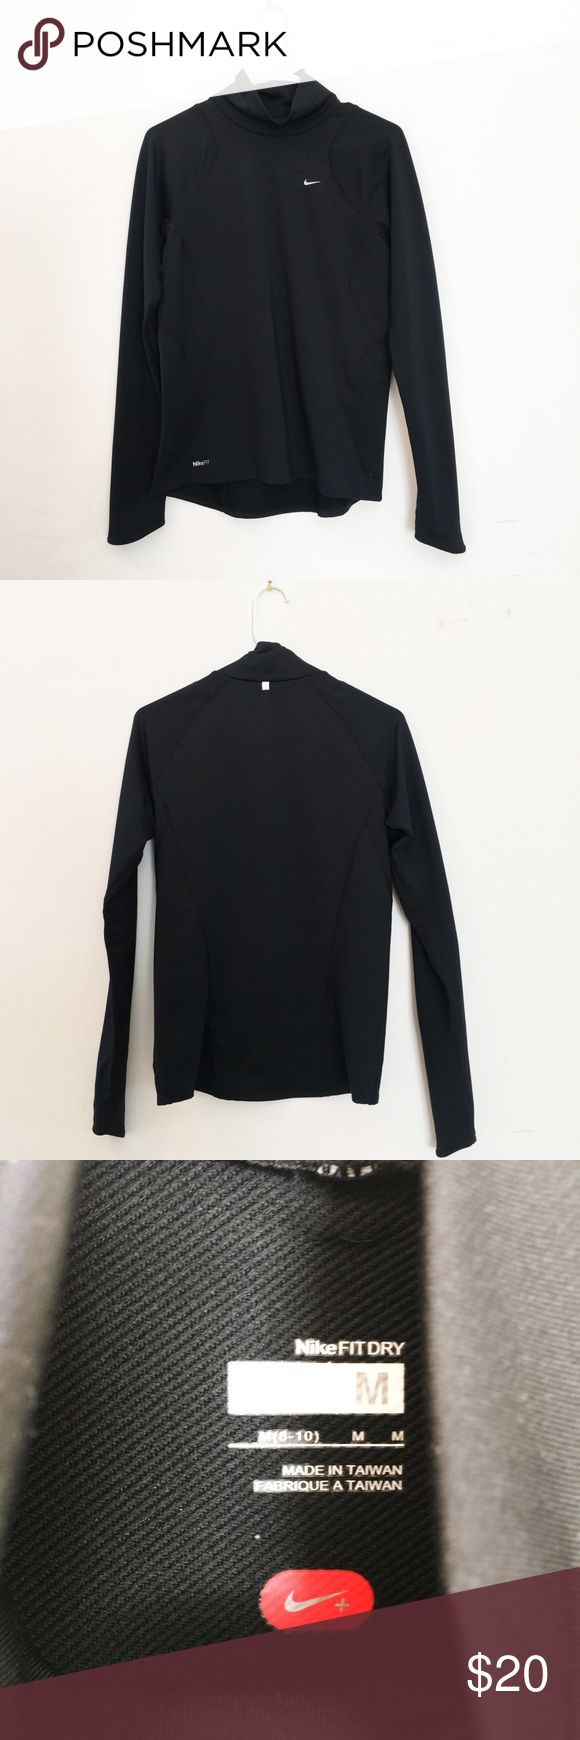 Nike Dri Fit Top For the serious sporty girl! This is an amazing winter pull-over by Nike. The end of the sleeves can pull-over to cover your fingers! Very simple but effective. Great price but open to reasonable offers! Nike Tops Sweatshirts & Hoodies